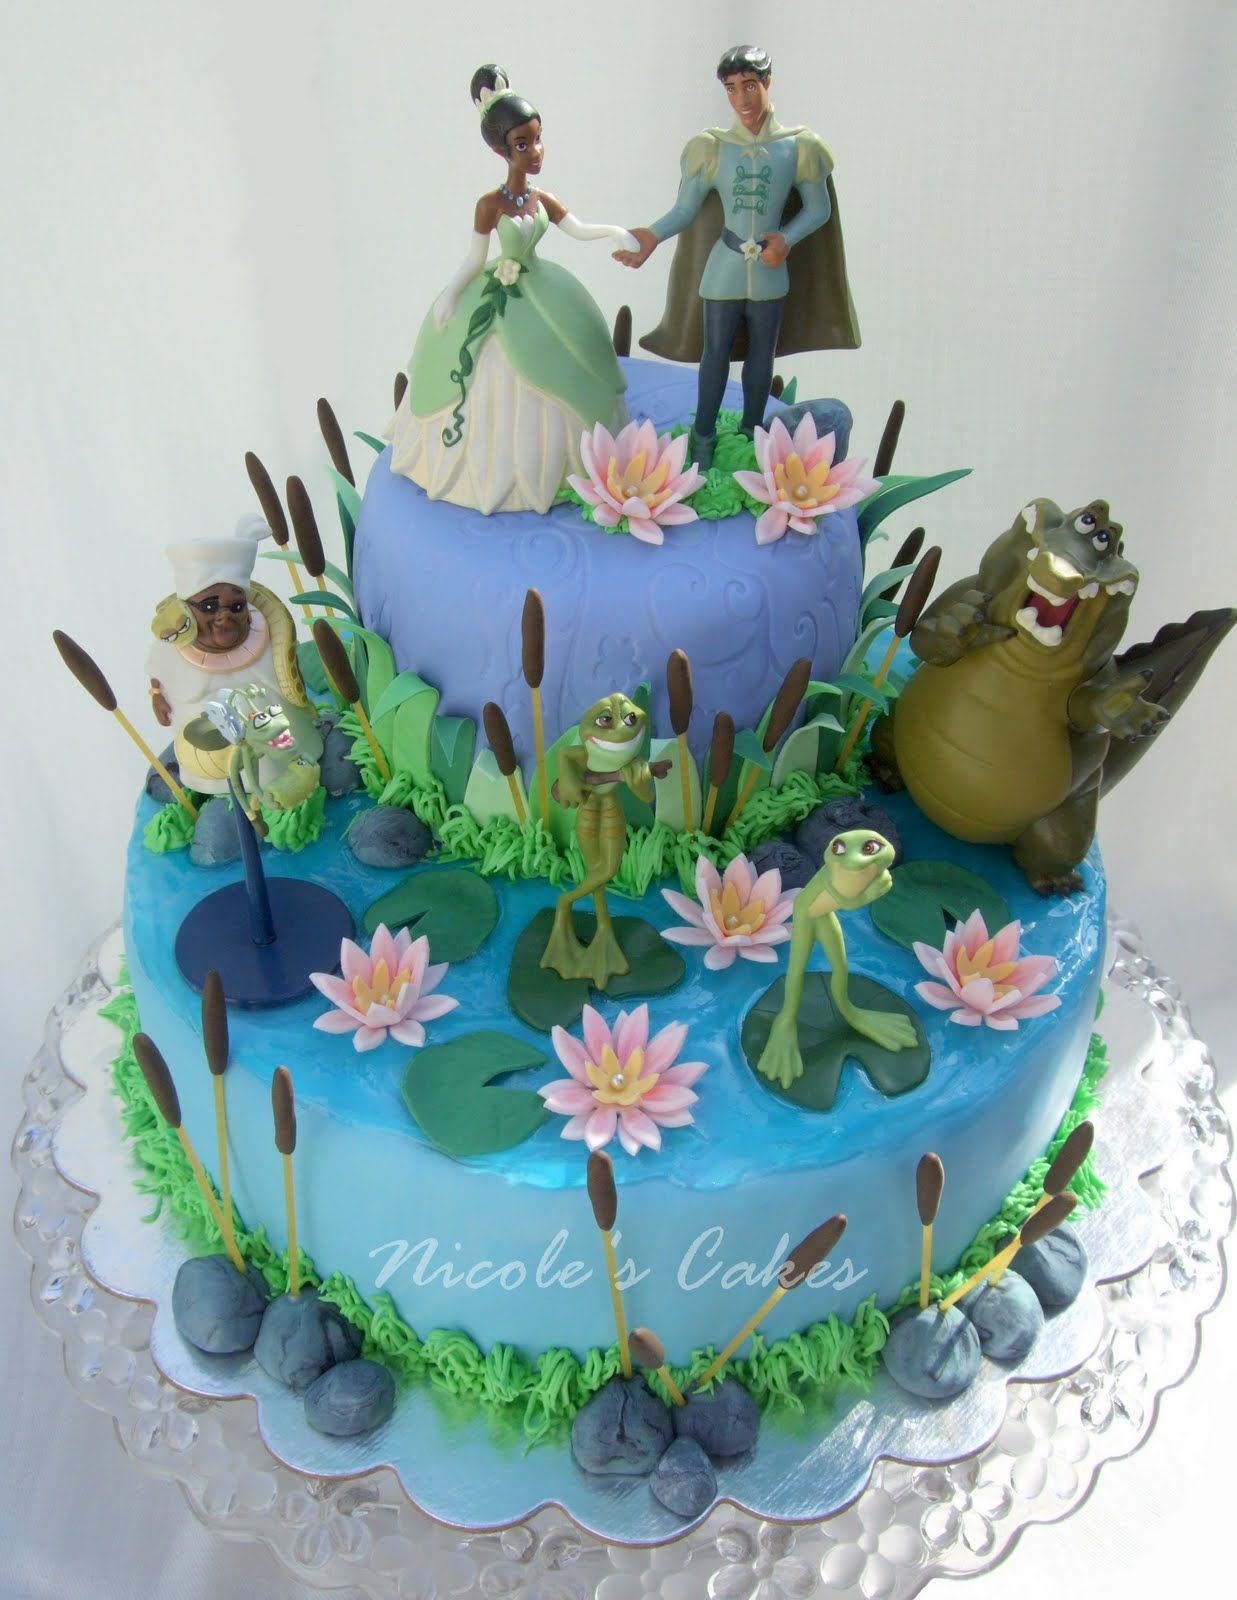 princess and the frog birthday cakes,princess and the frog toys